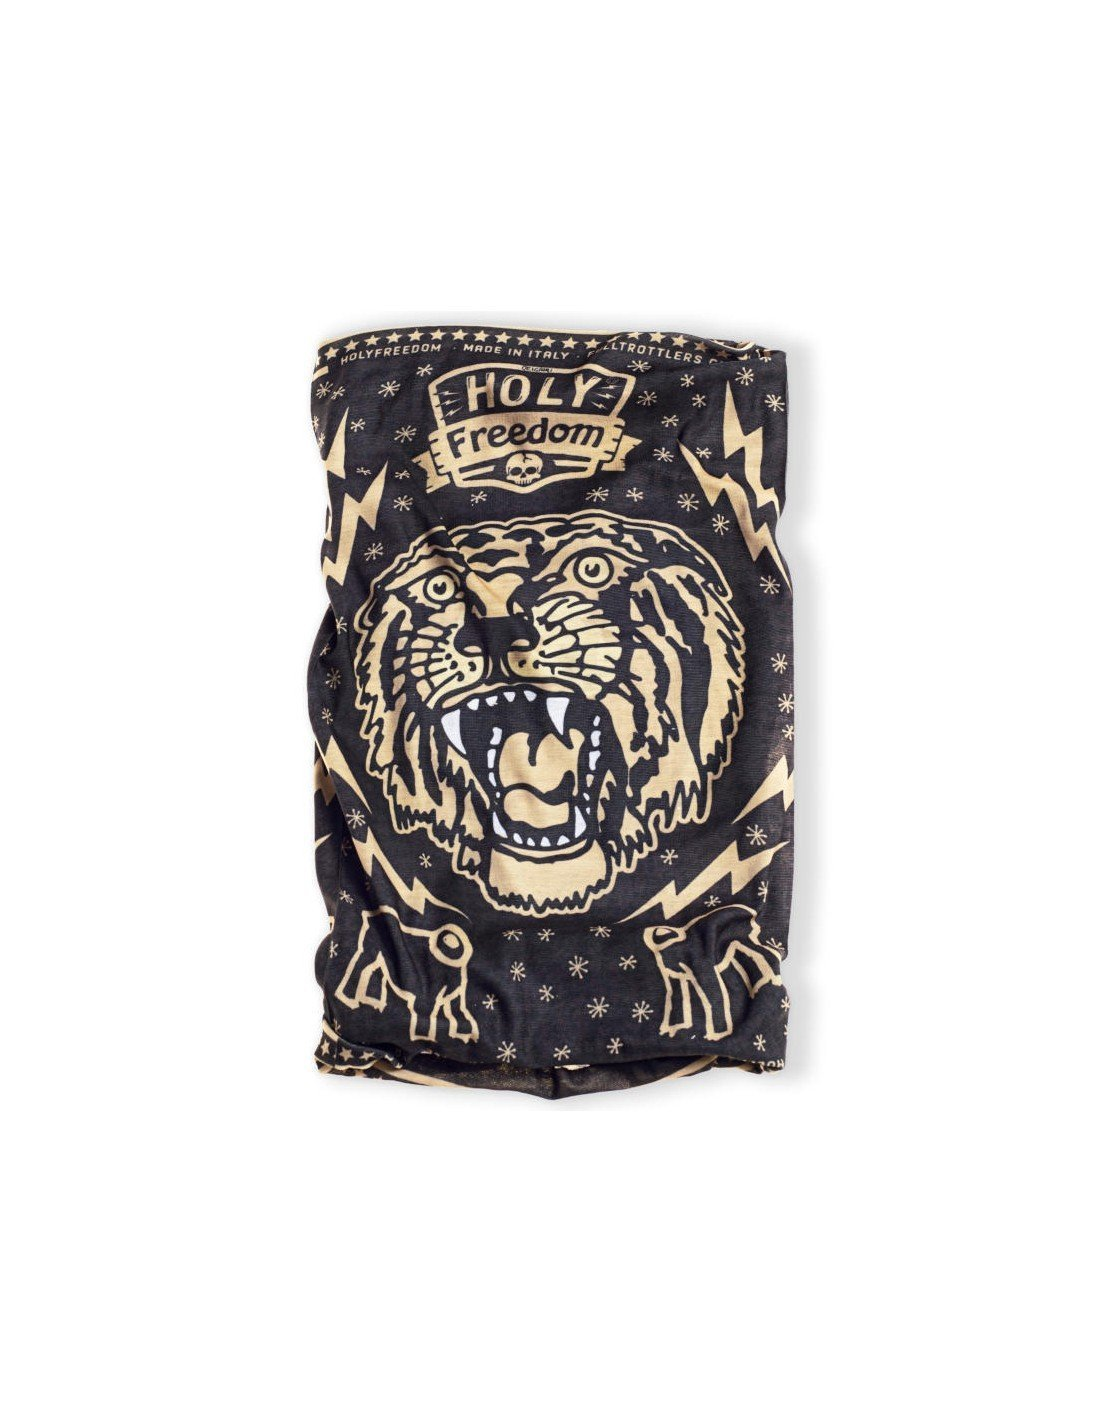 Holy Freedom - Holy Freedom El Tiger Primaloft Bandana Tube - Bandana's and Tubes - Salt Flats Clothing